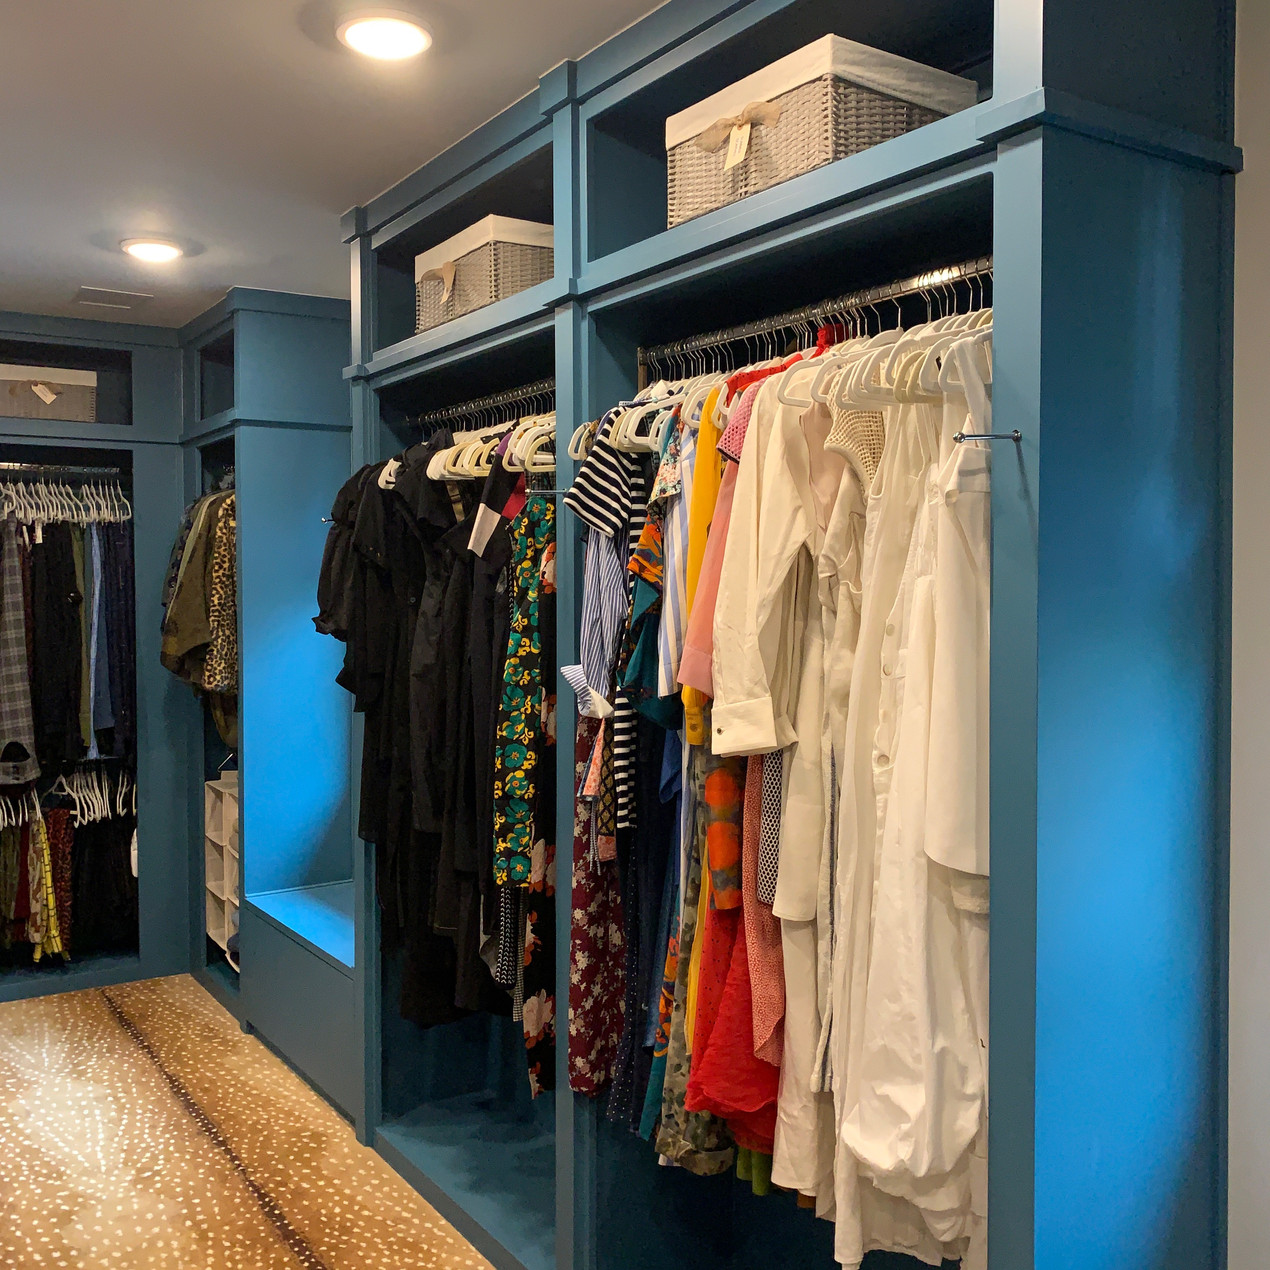 Closet organization by Jenny Dietsch at Getting it Done Organizing | Blue closet with matching velvet hangers